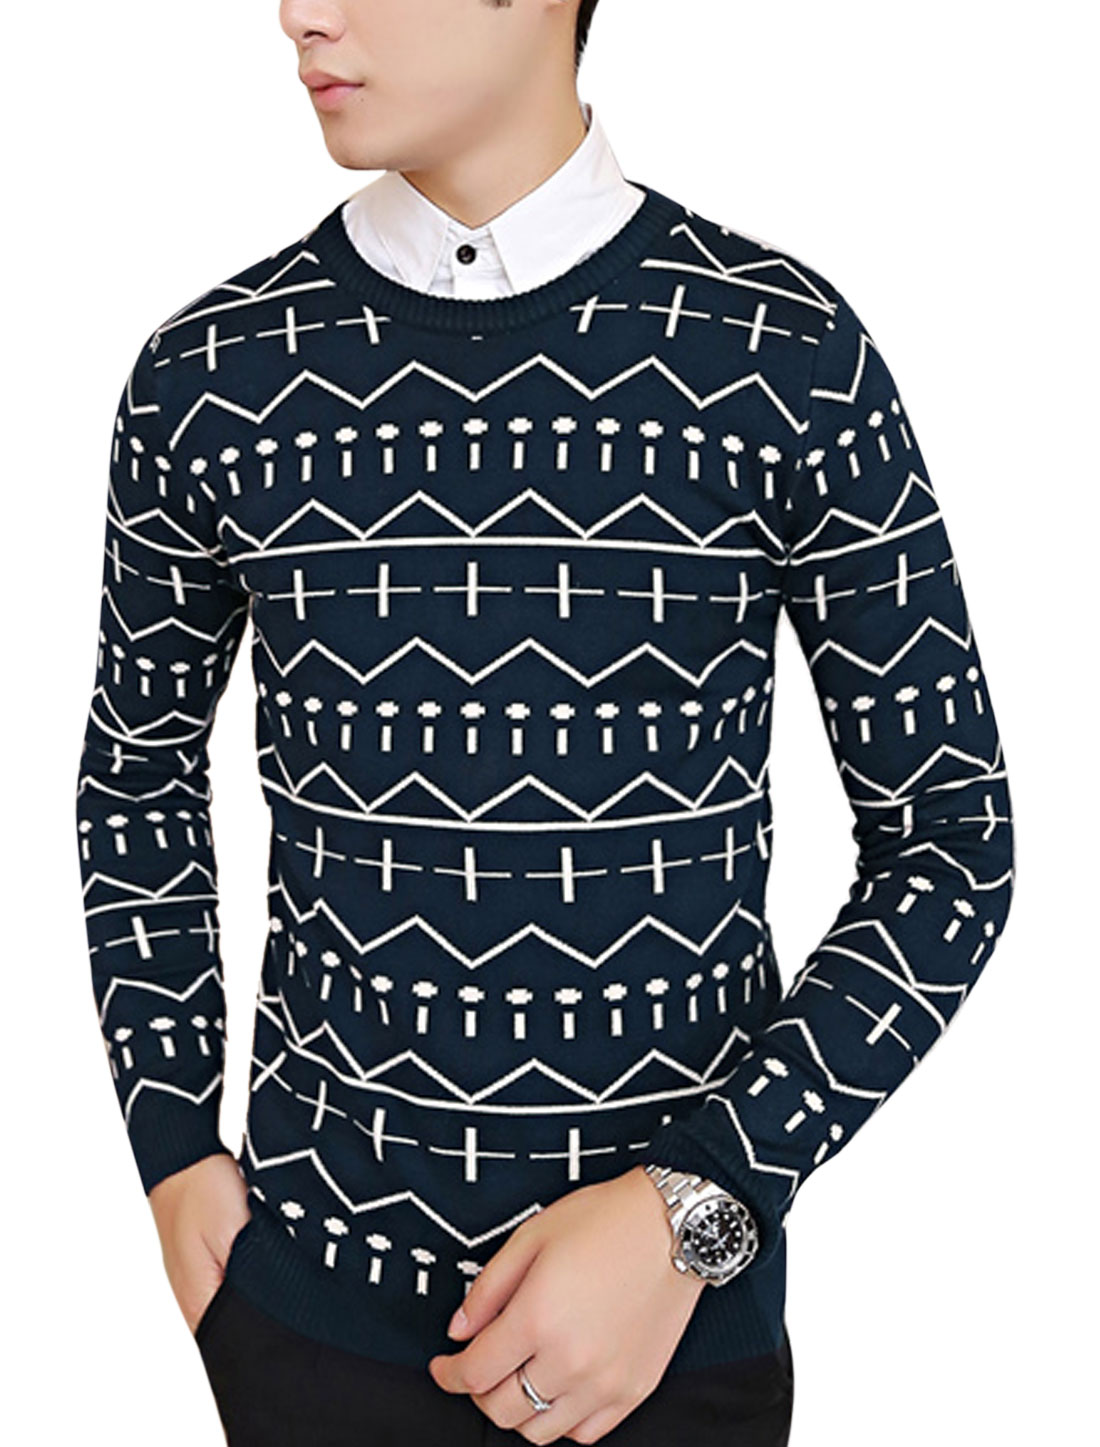 Men Round Neck Geometric Pattern Casual Knit Shirt Navy Blue M